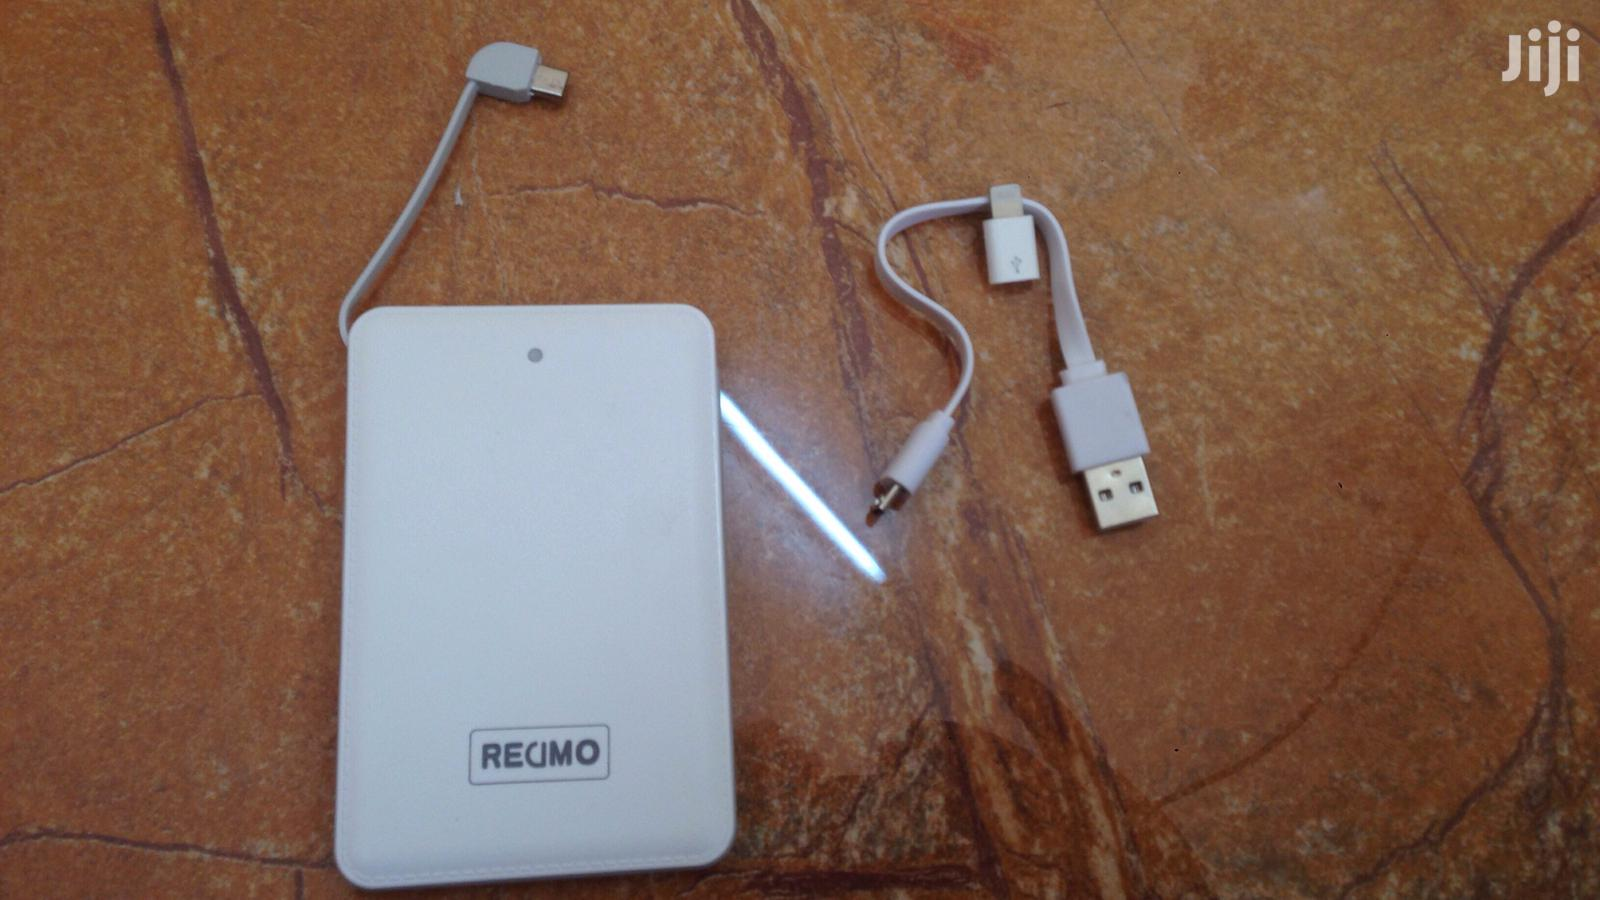 Genuine Redmo Power Bank 10,000 Mah